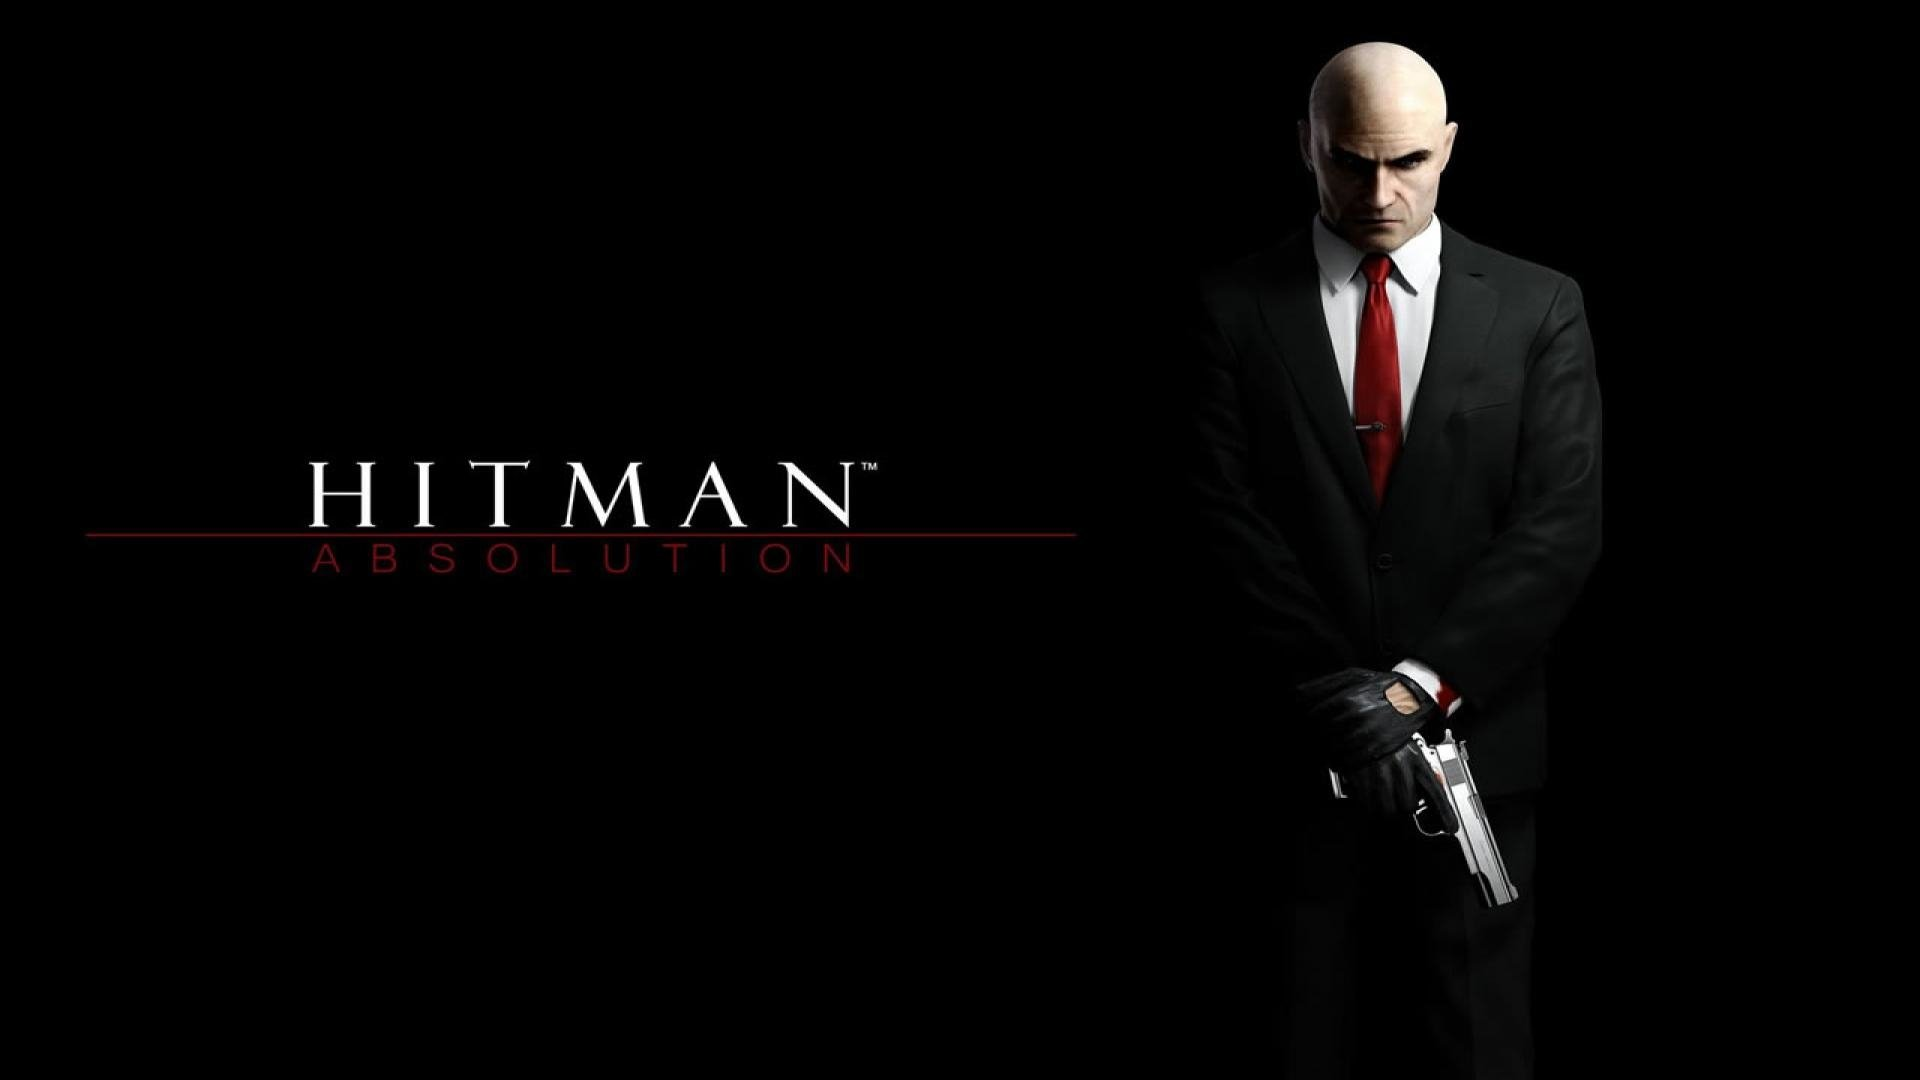 55 hitman: absolution hd wallpapers | background images - wallpaper